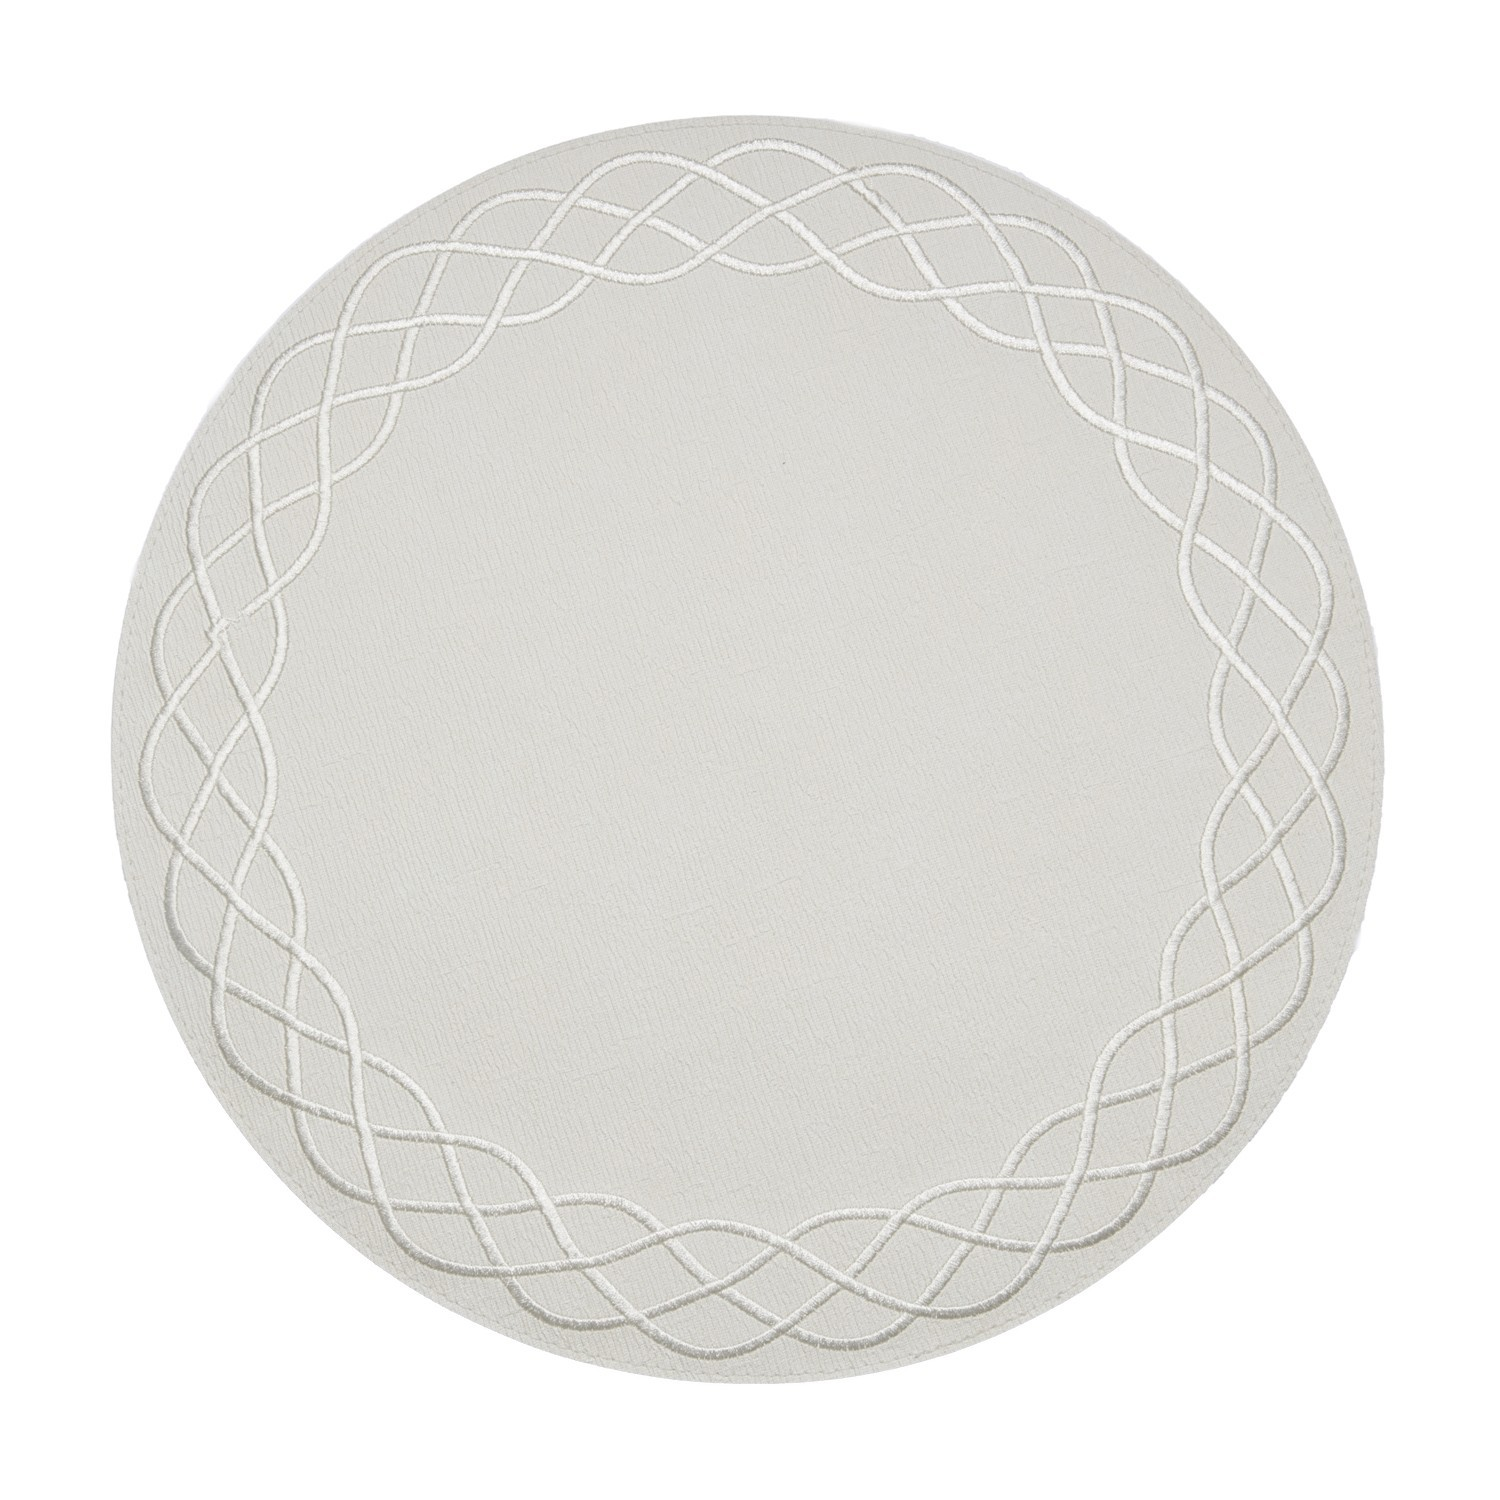 Bodrum Round Ivory Helix Placemats Set/6